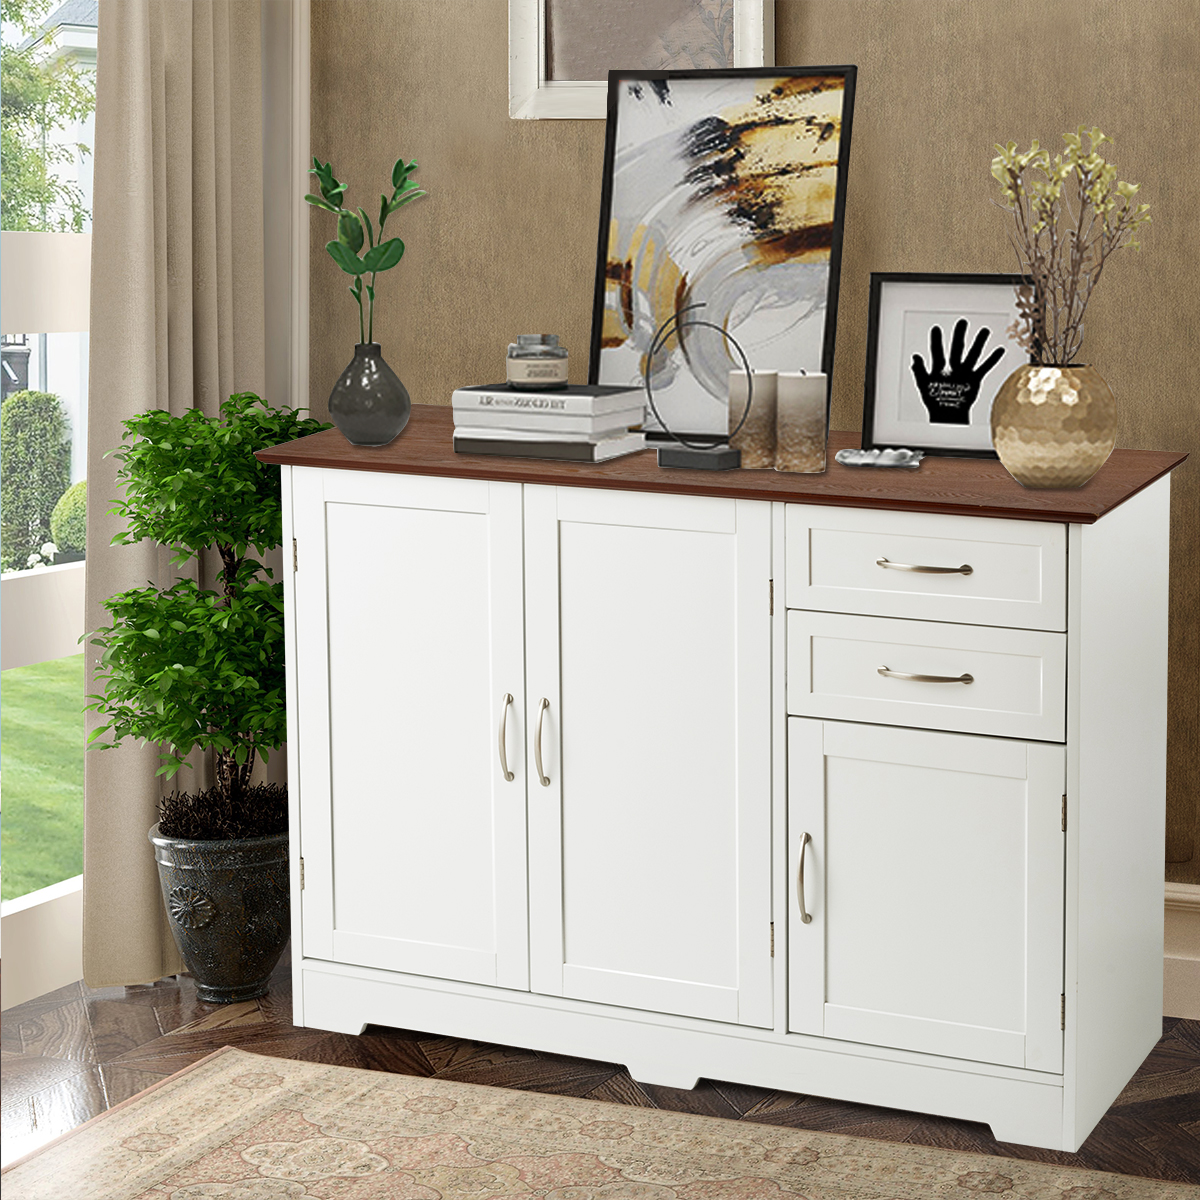 buffet storage cabinet console table kitchen sideboardd